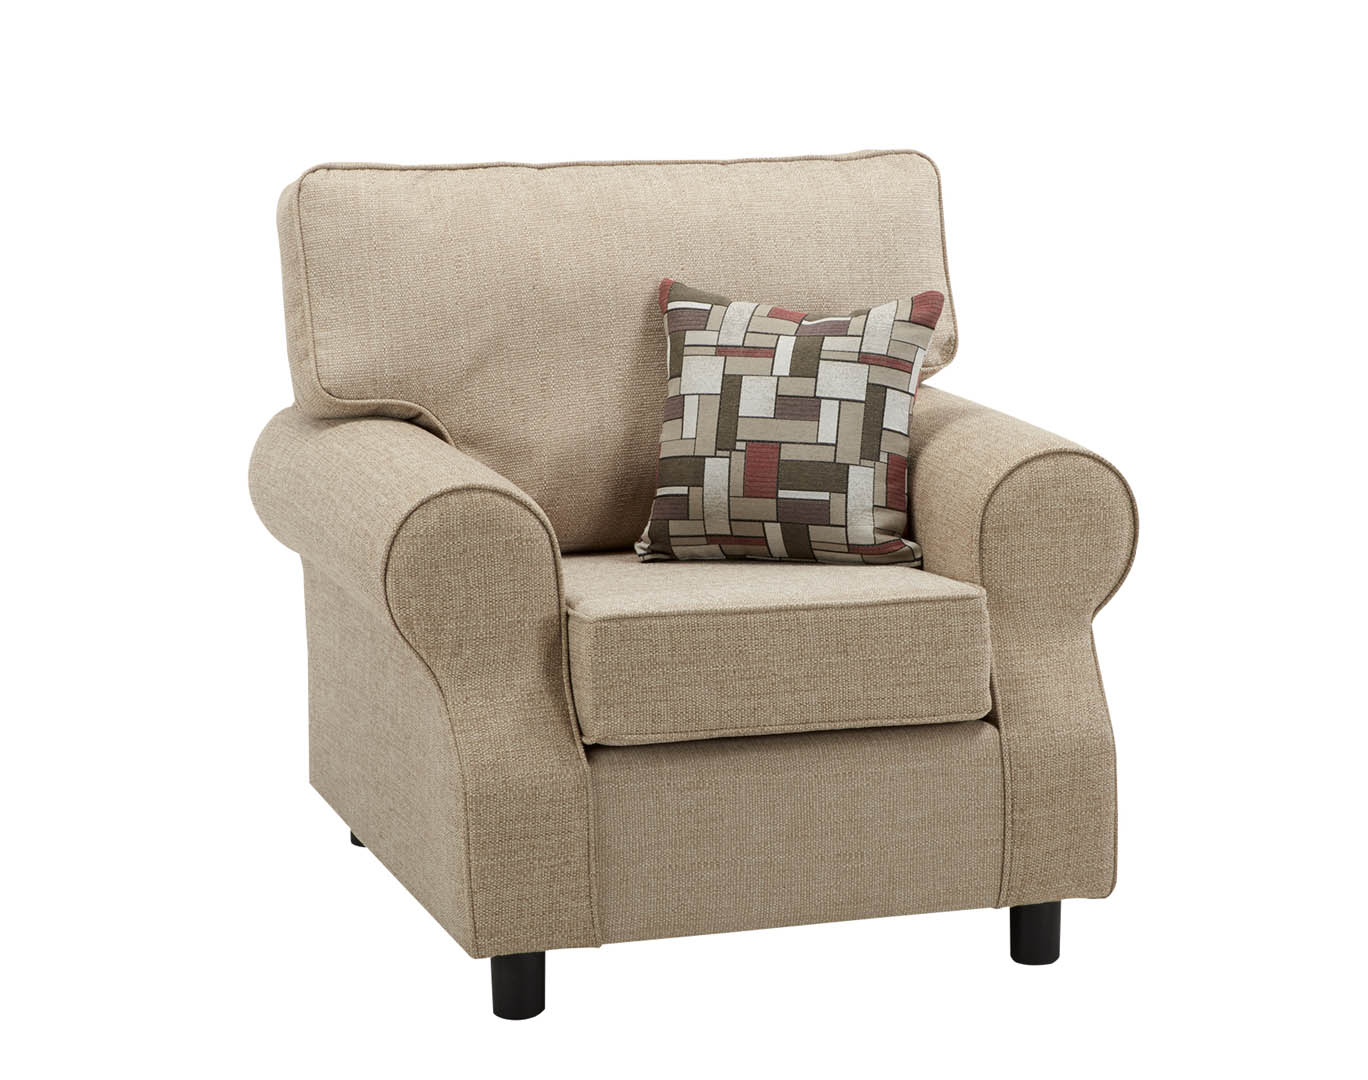 Karina Chair - available as a 3 seater, 2 seater, chair and chaise.